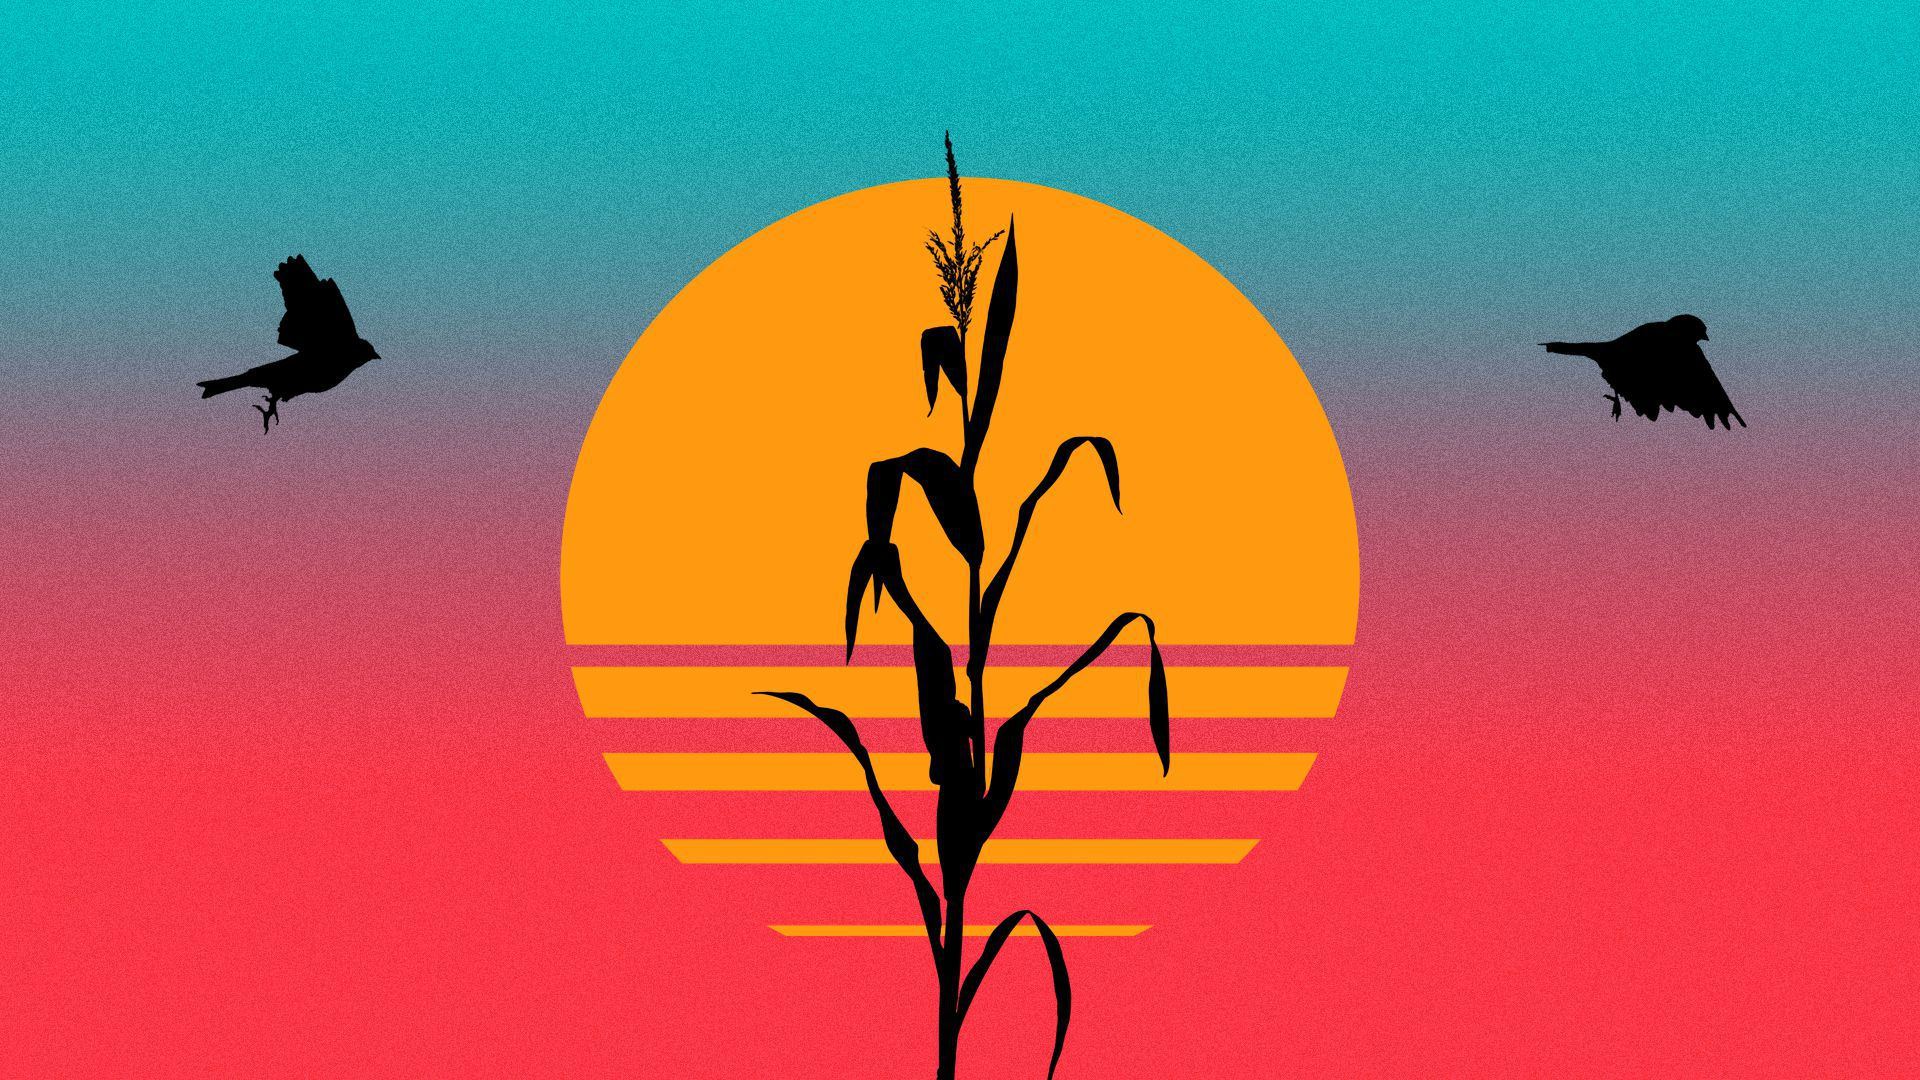 Illustration of a cornstalk and two goldfinches silhouetted against a sun and sky in neon colors.